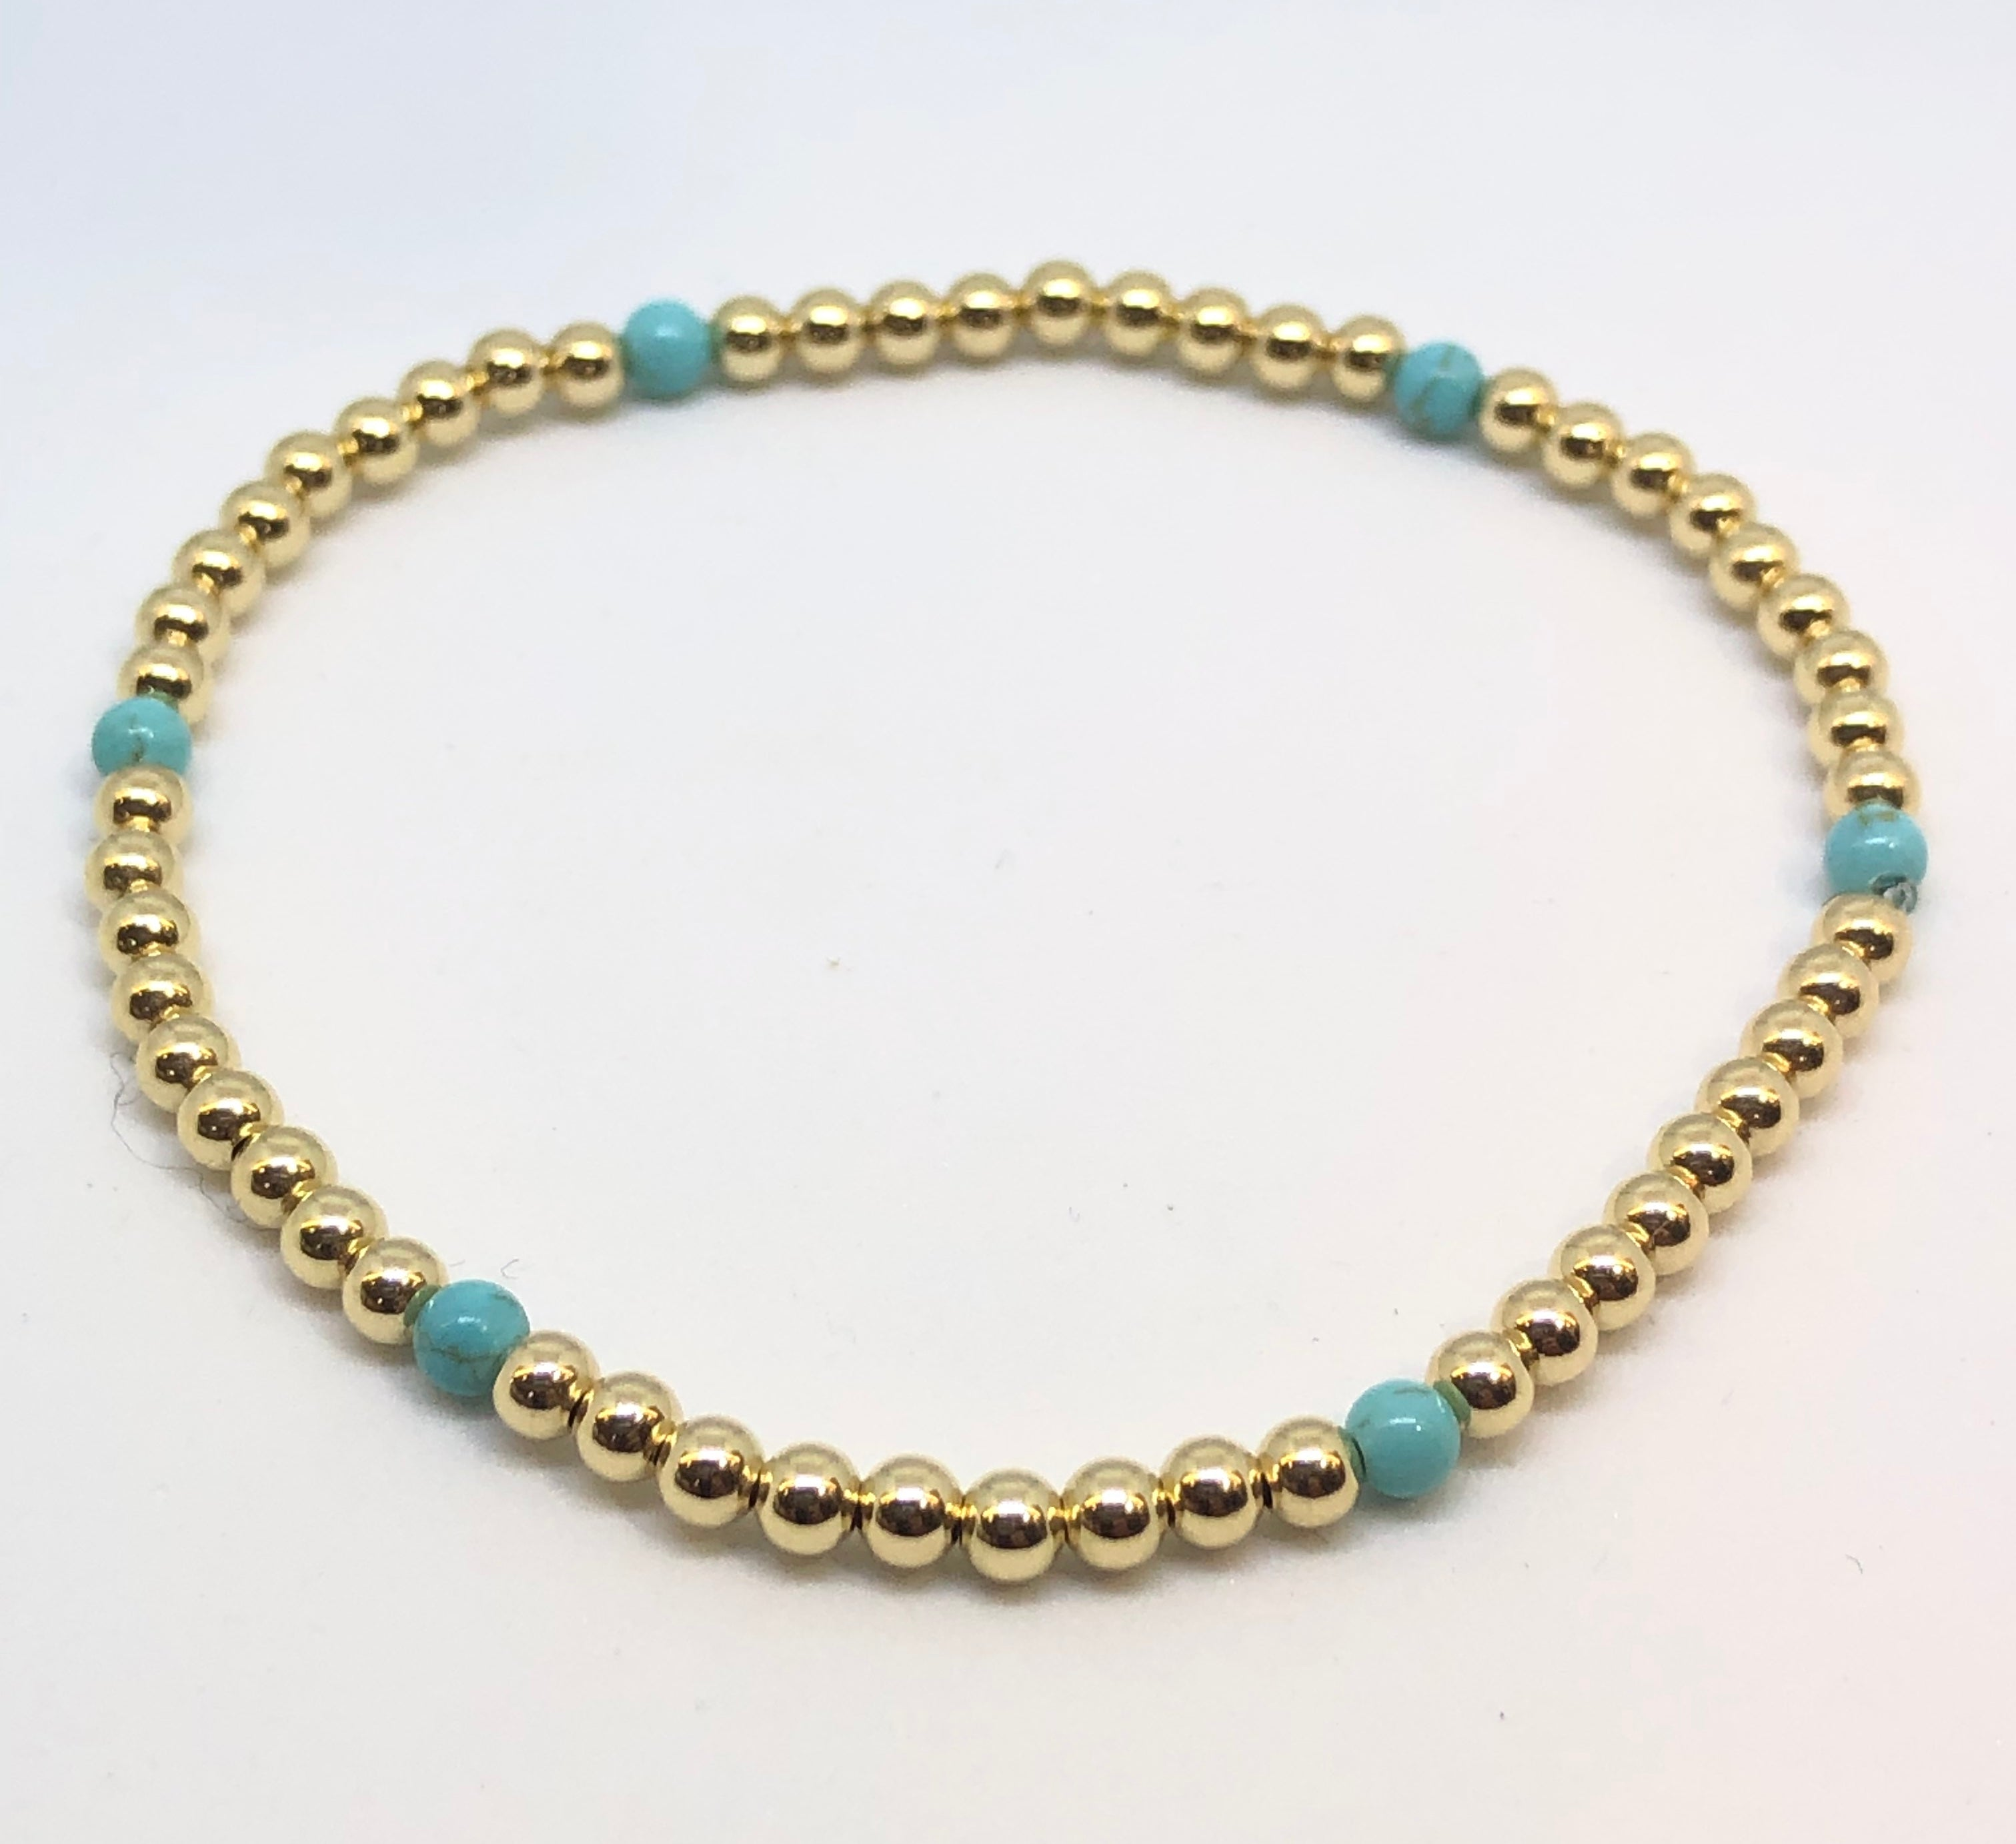 3mm 14kt Gold Filled Bead Bracelet with 6 Turquoise Beads